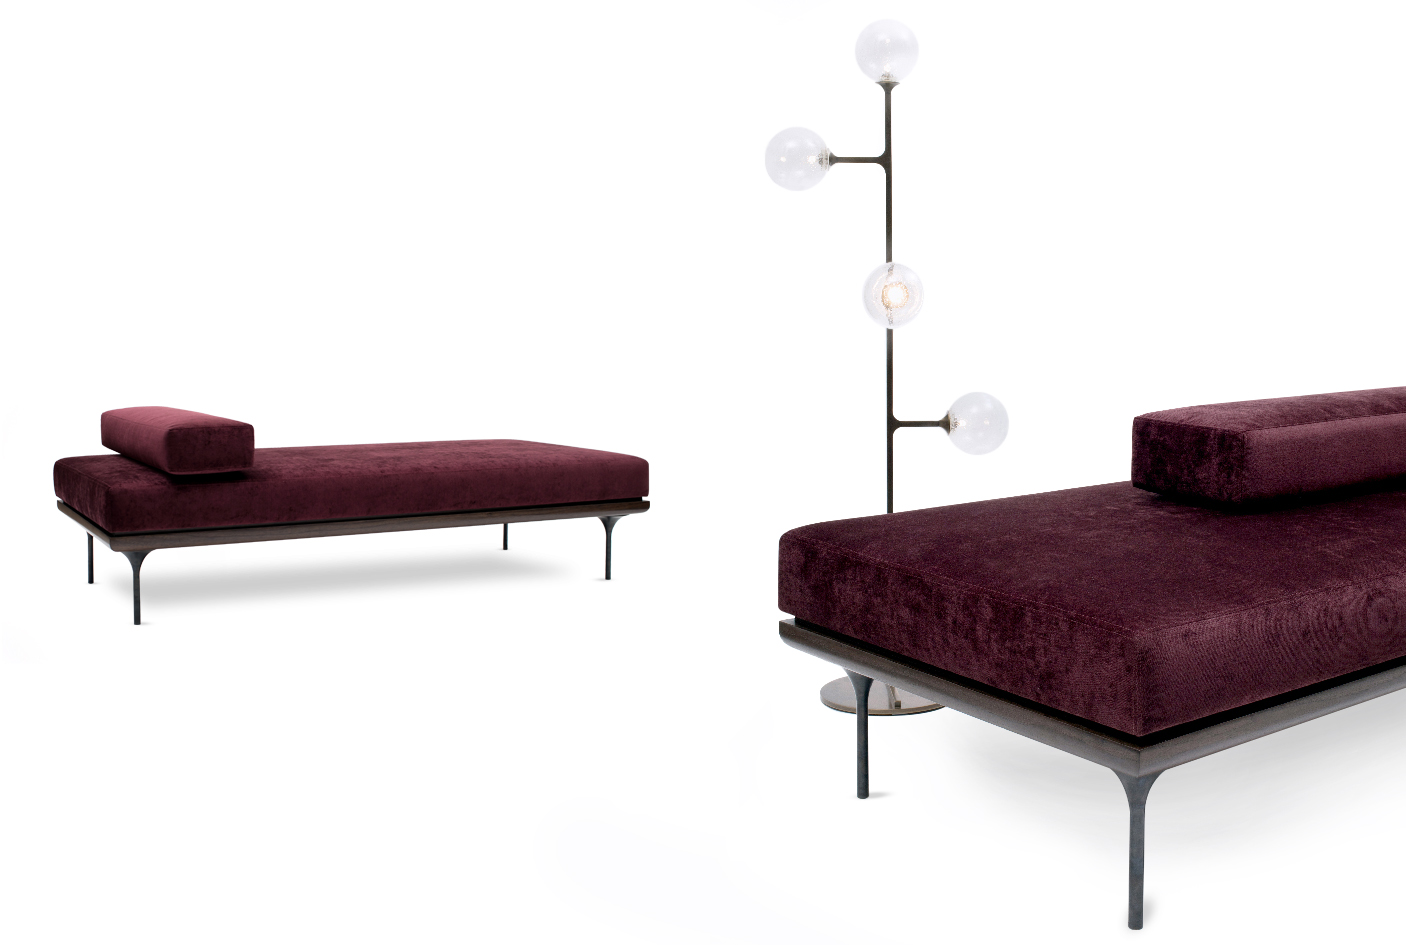 NYX daybed_Comp3-01.jpg